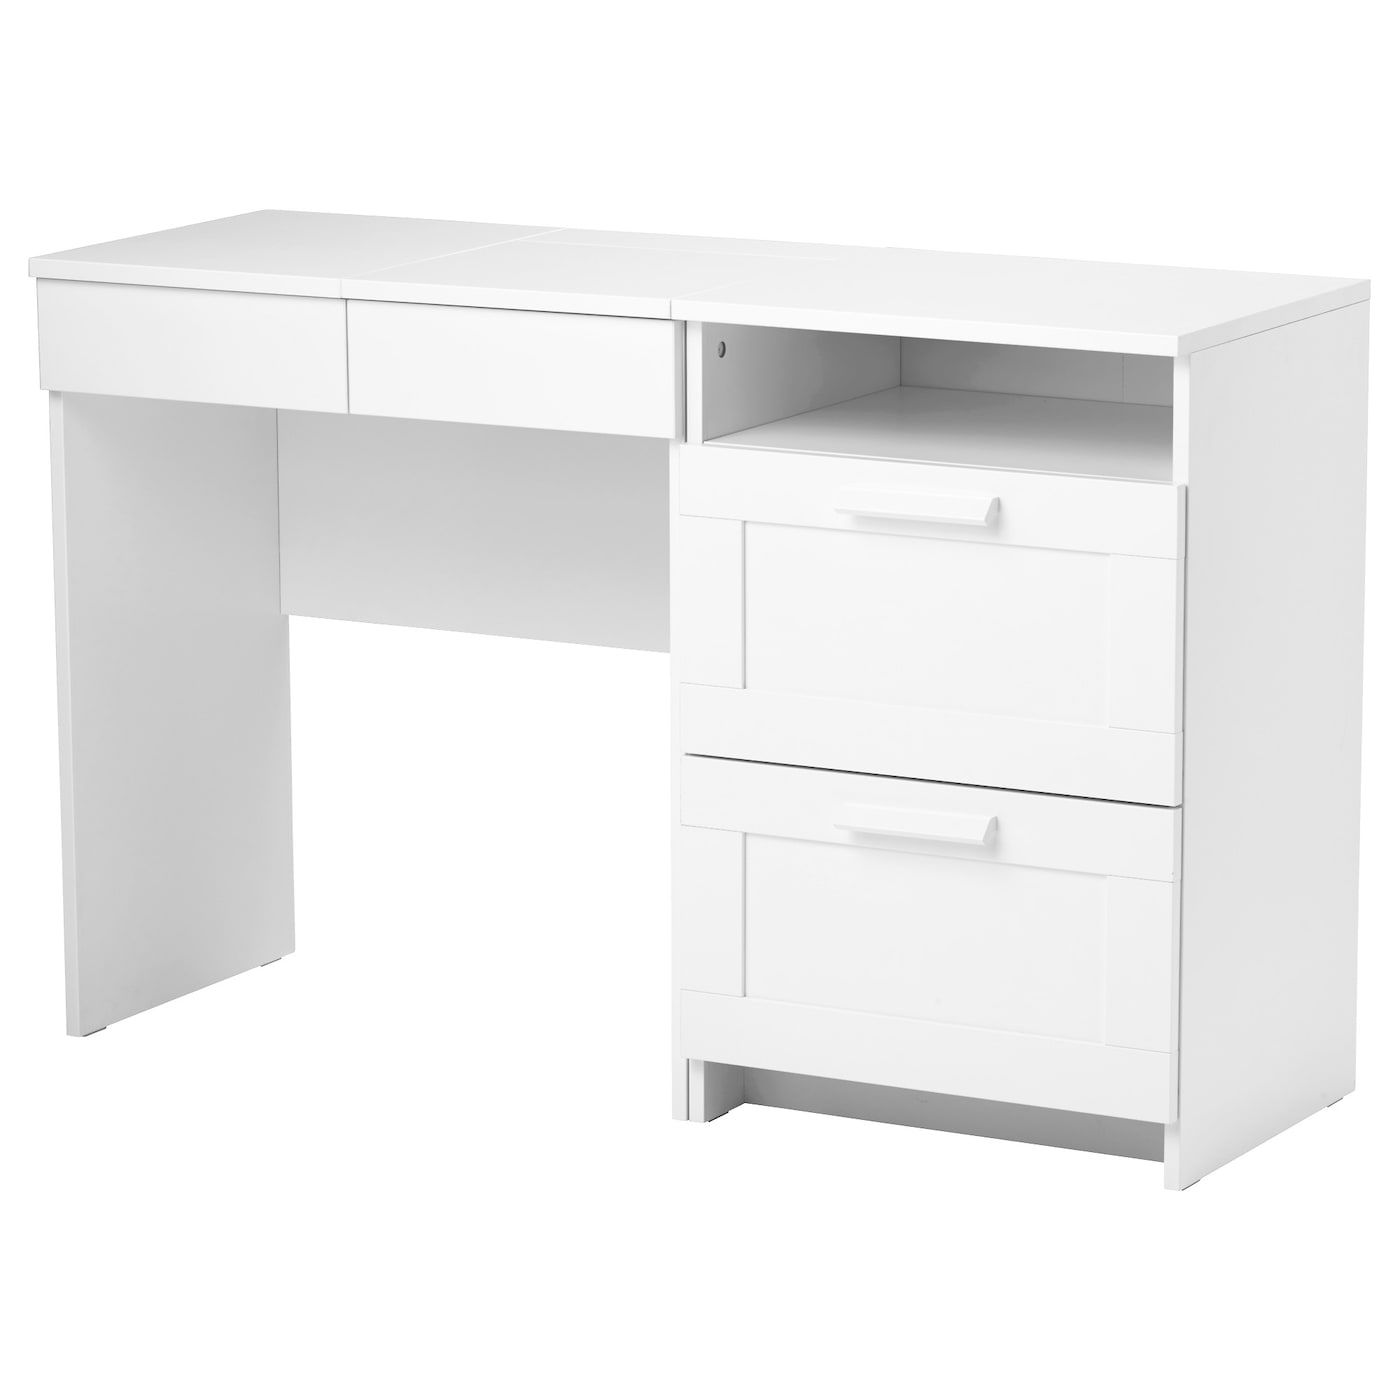 brimnes dressing table chest of 2 drawers white ikea. Black Bedroom Furniture Sets. Home Design Ideas